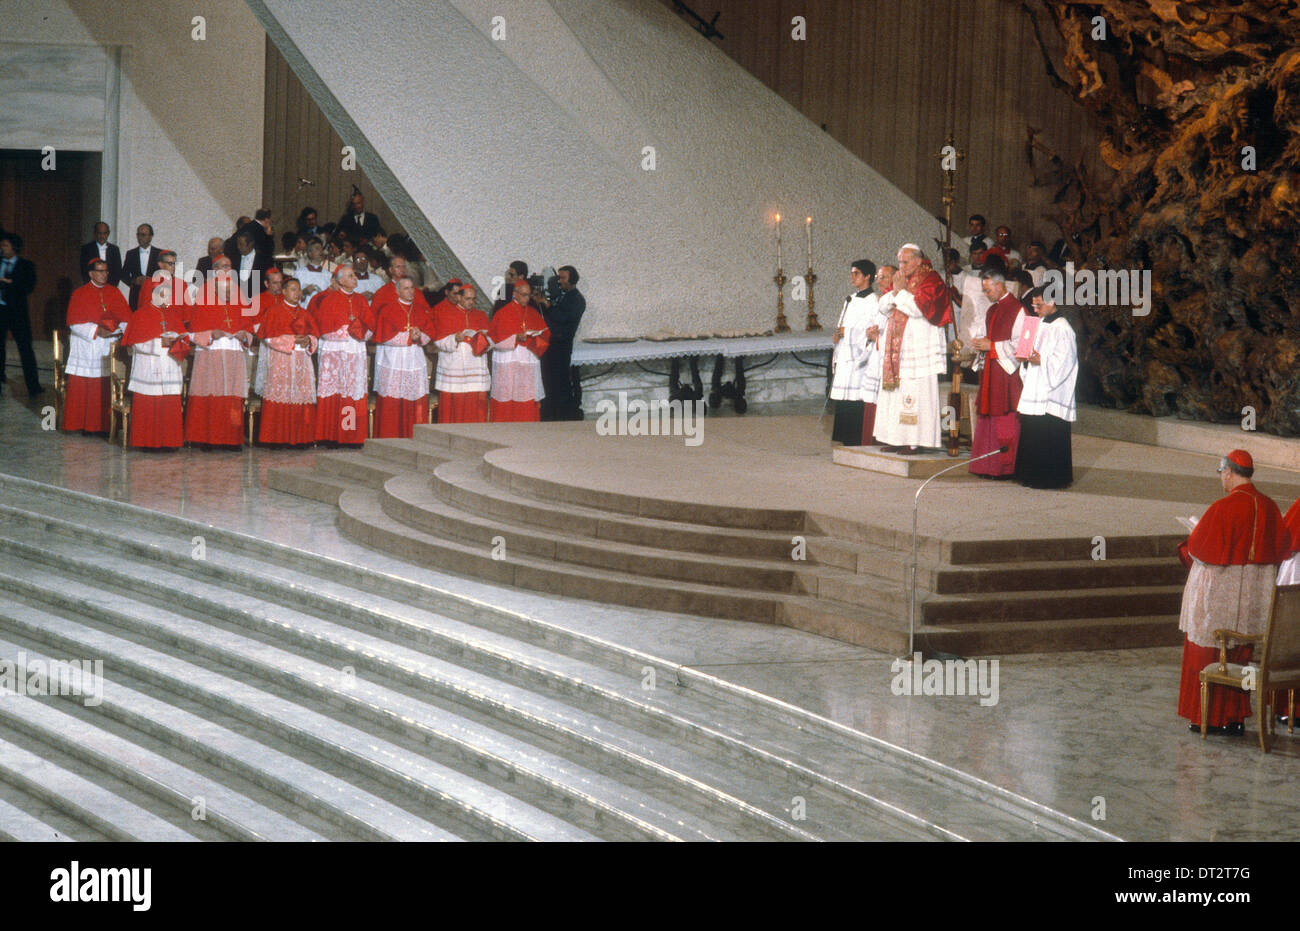 POPE SAINT JOHN PAUL 11 WITH NEWLY APPOINTED CARDINALS VATICAN CITY ROME ITLAY - Stock Image